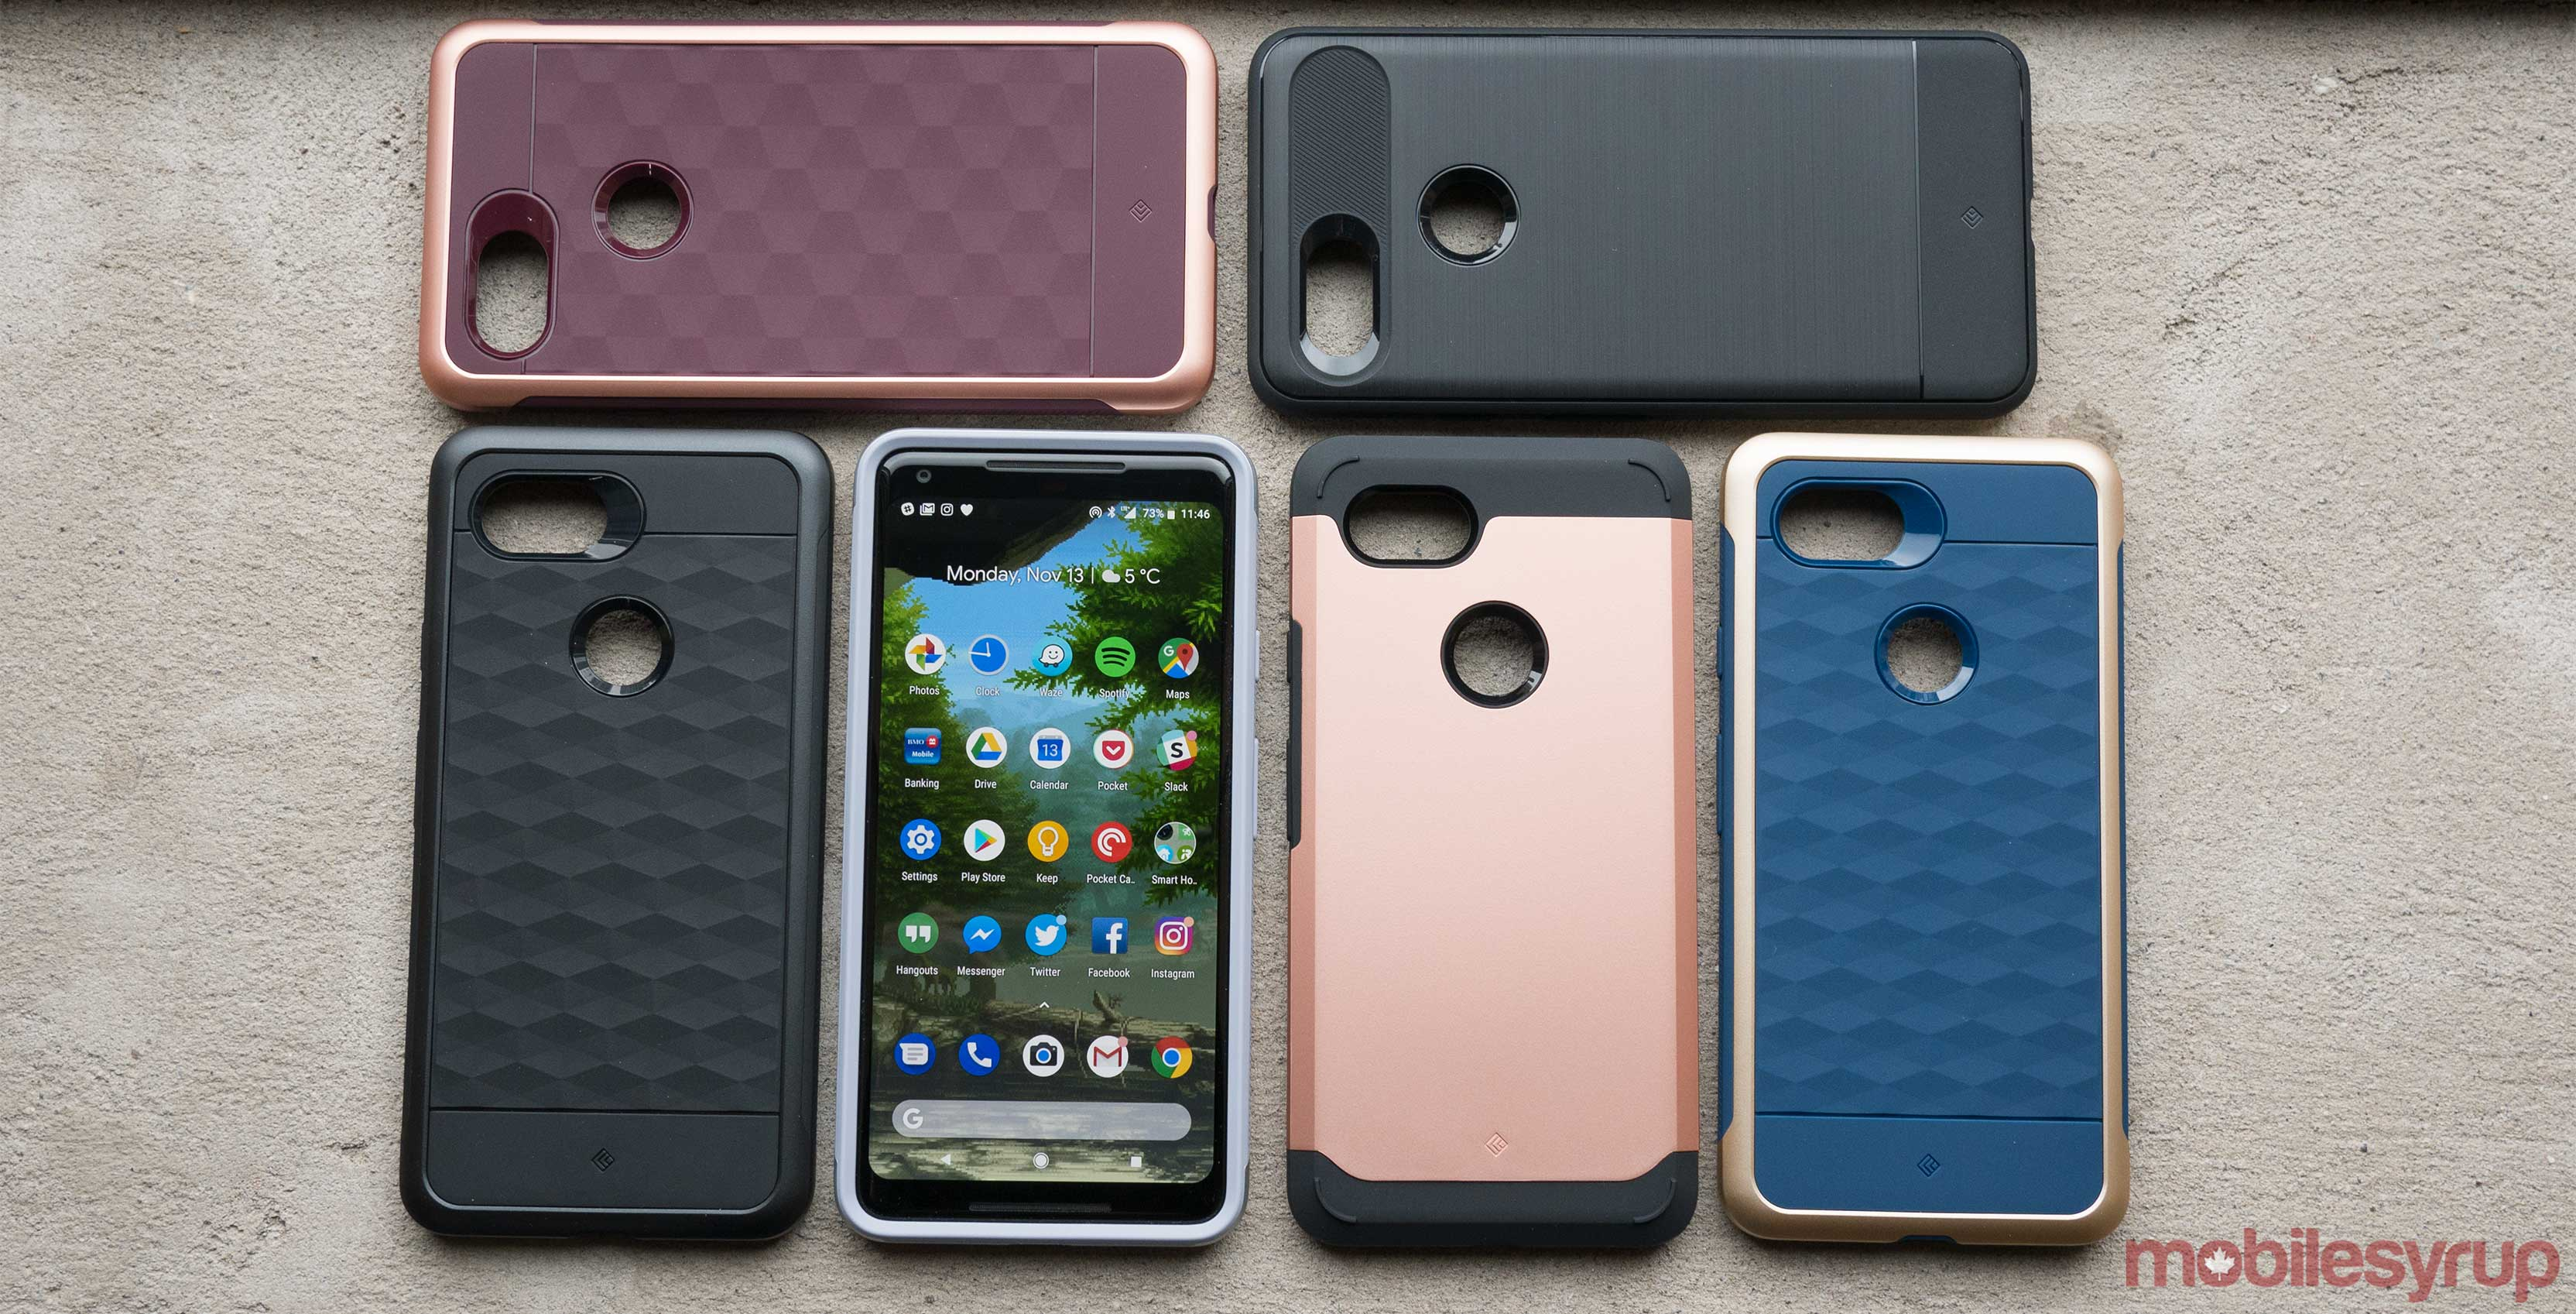 Caseology Pixel 2 XL cases